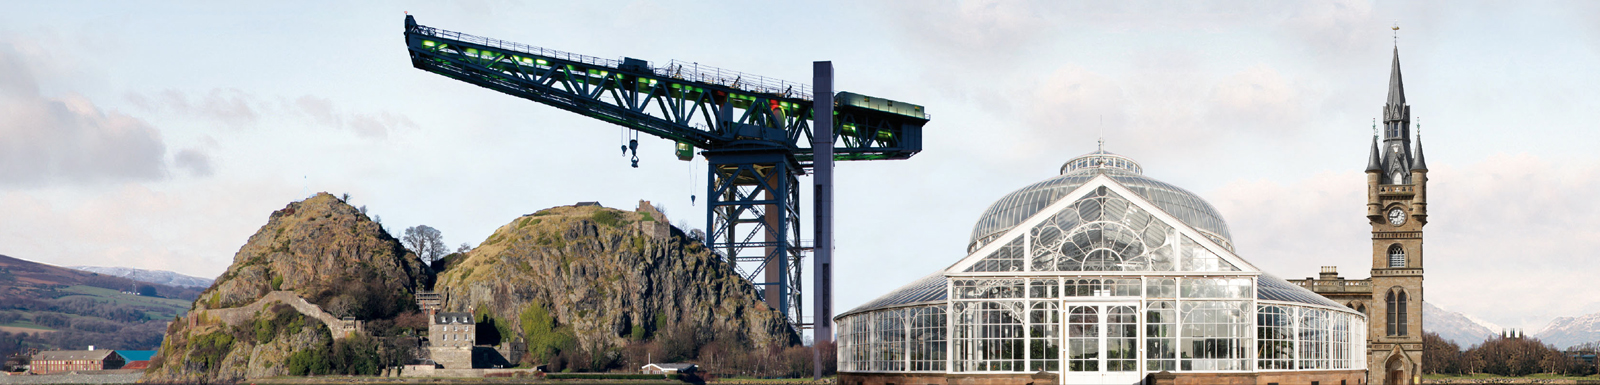 Clyde Waterfront Heritage